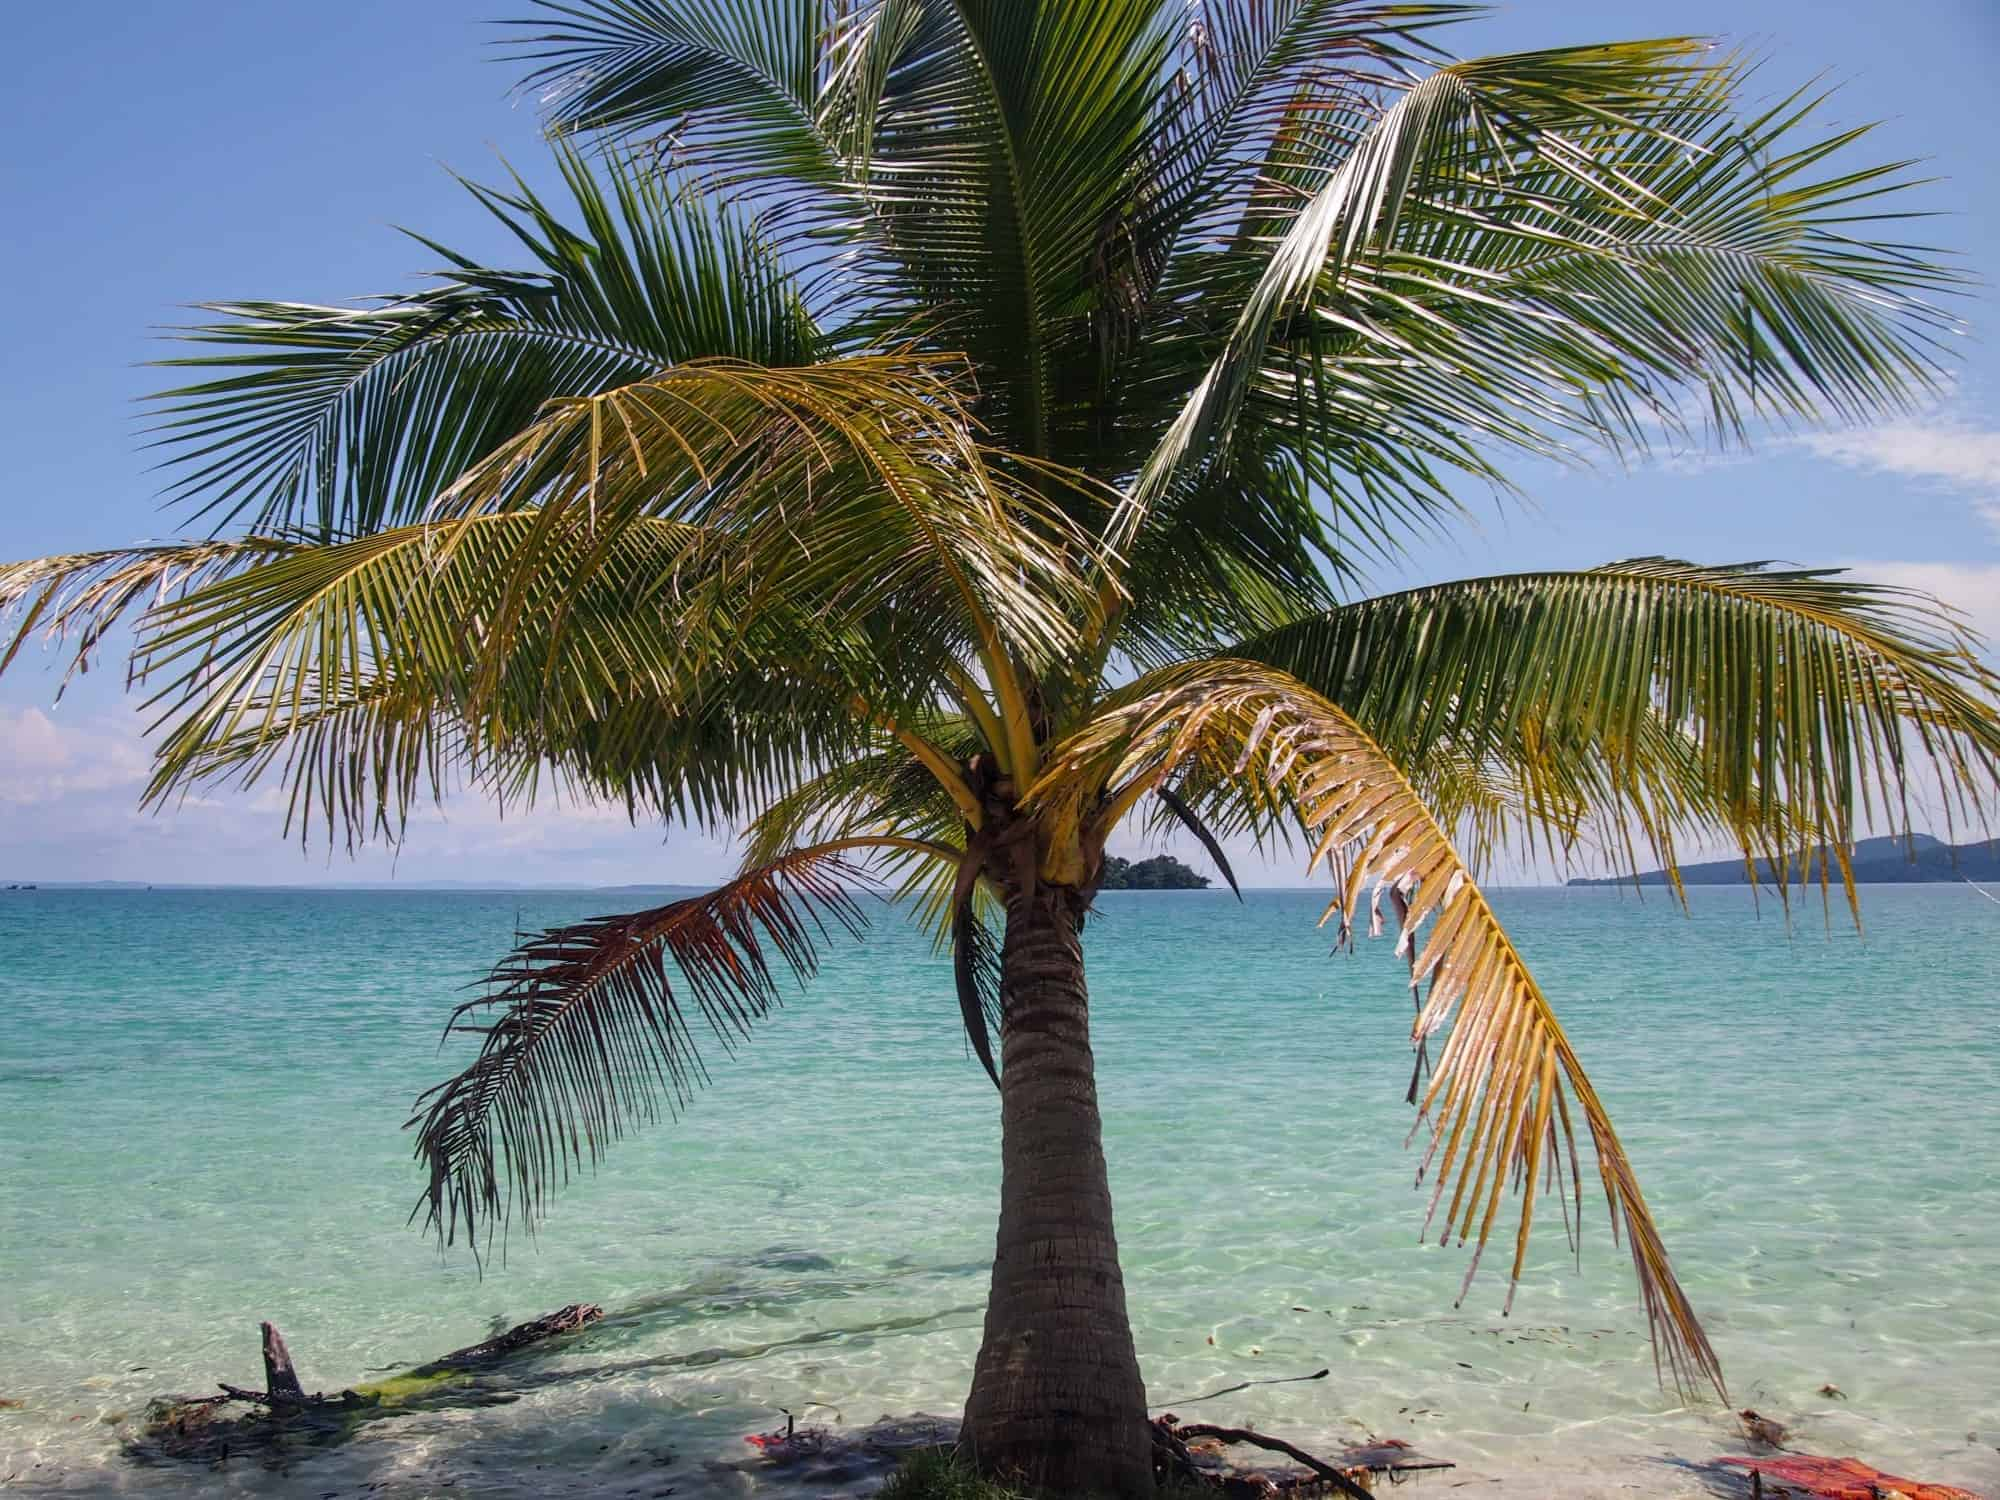 Solo palm tree, Koh Rong